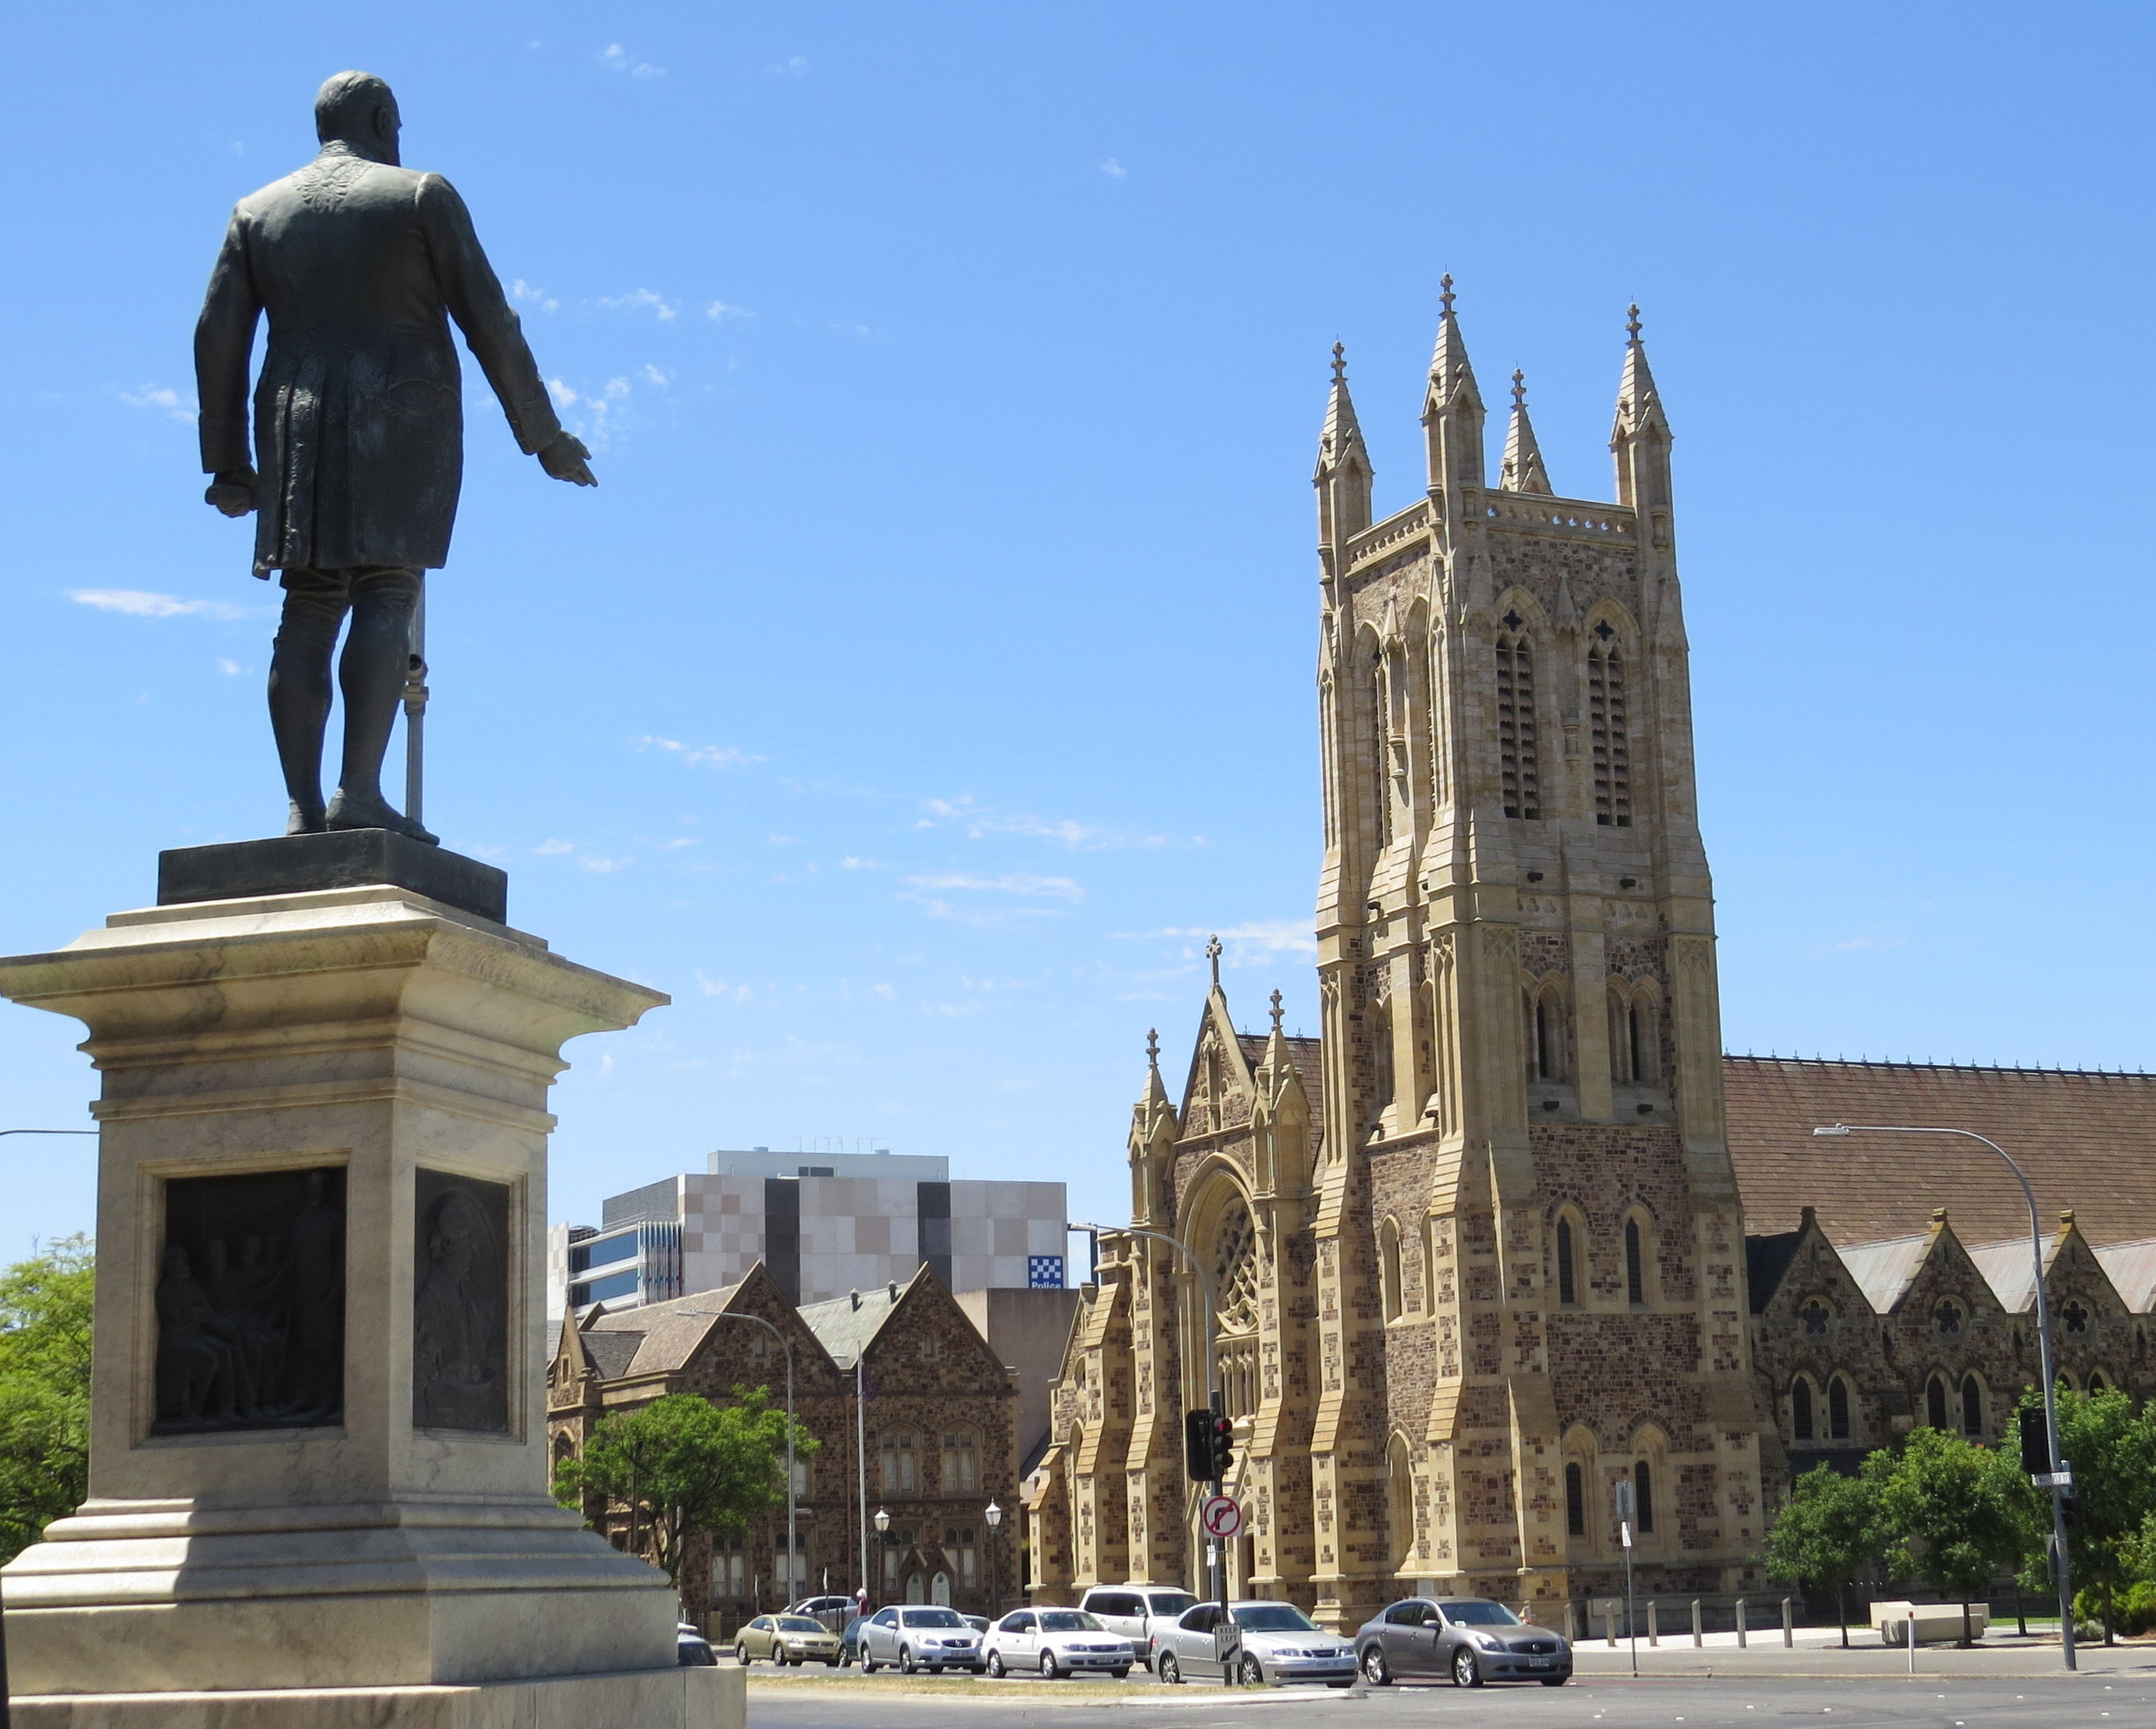 Adelaide, a gem of a city